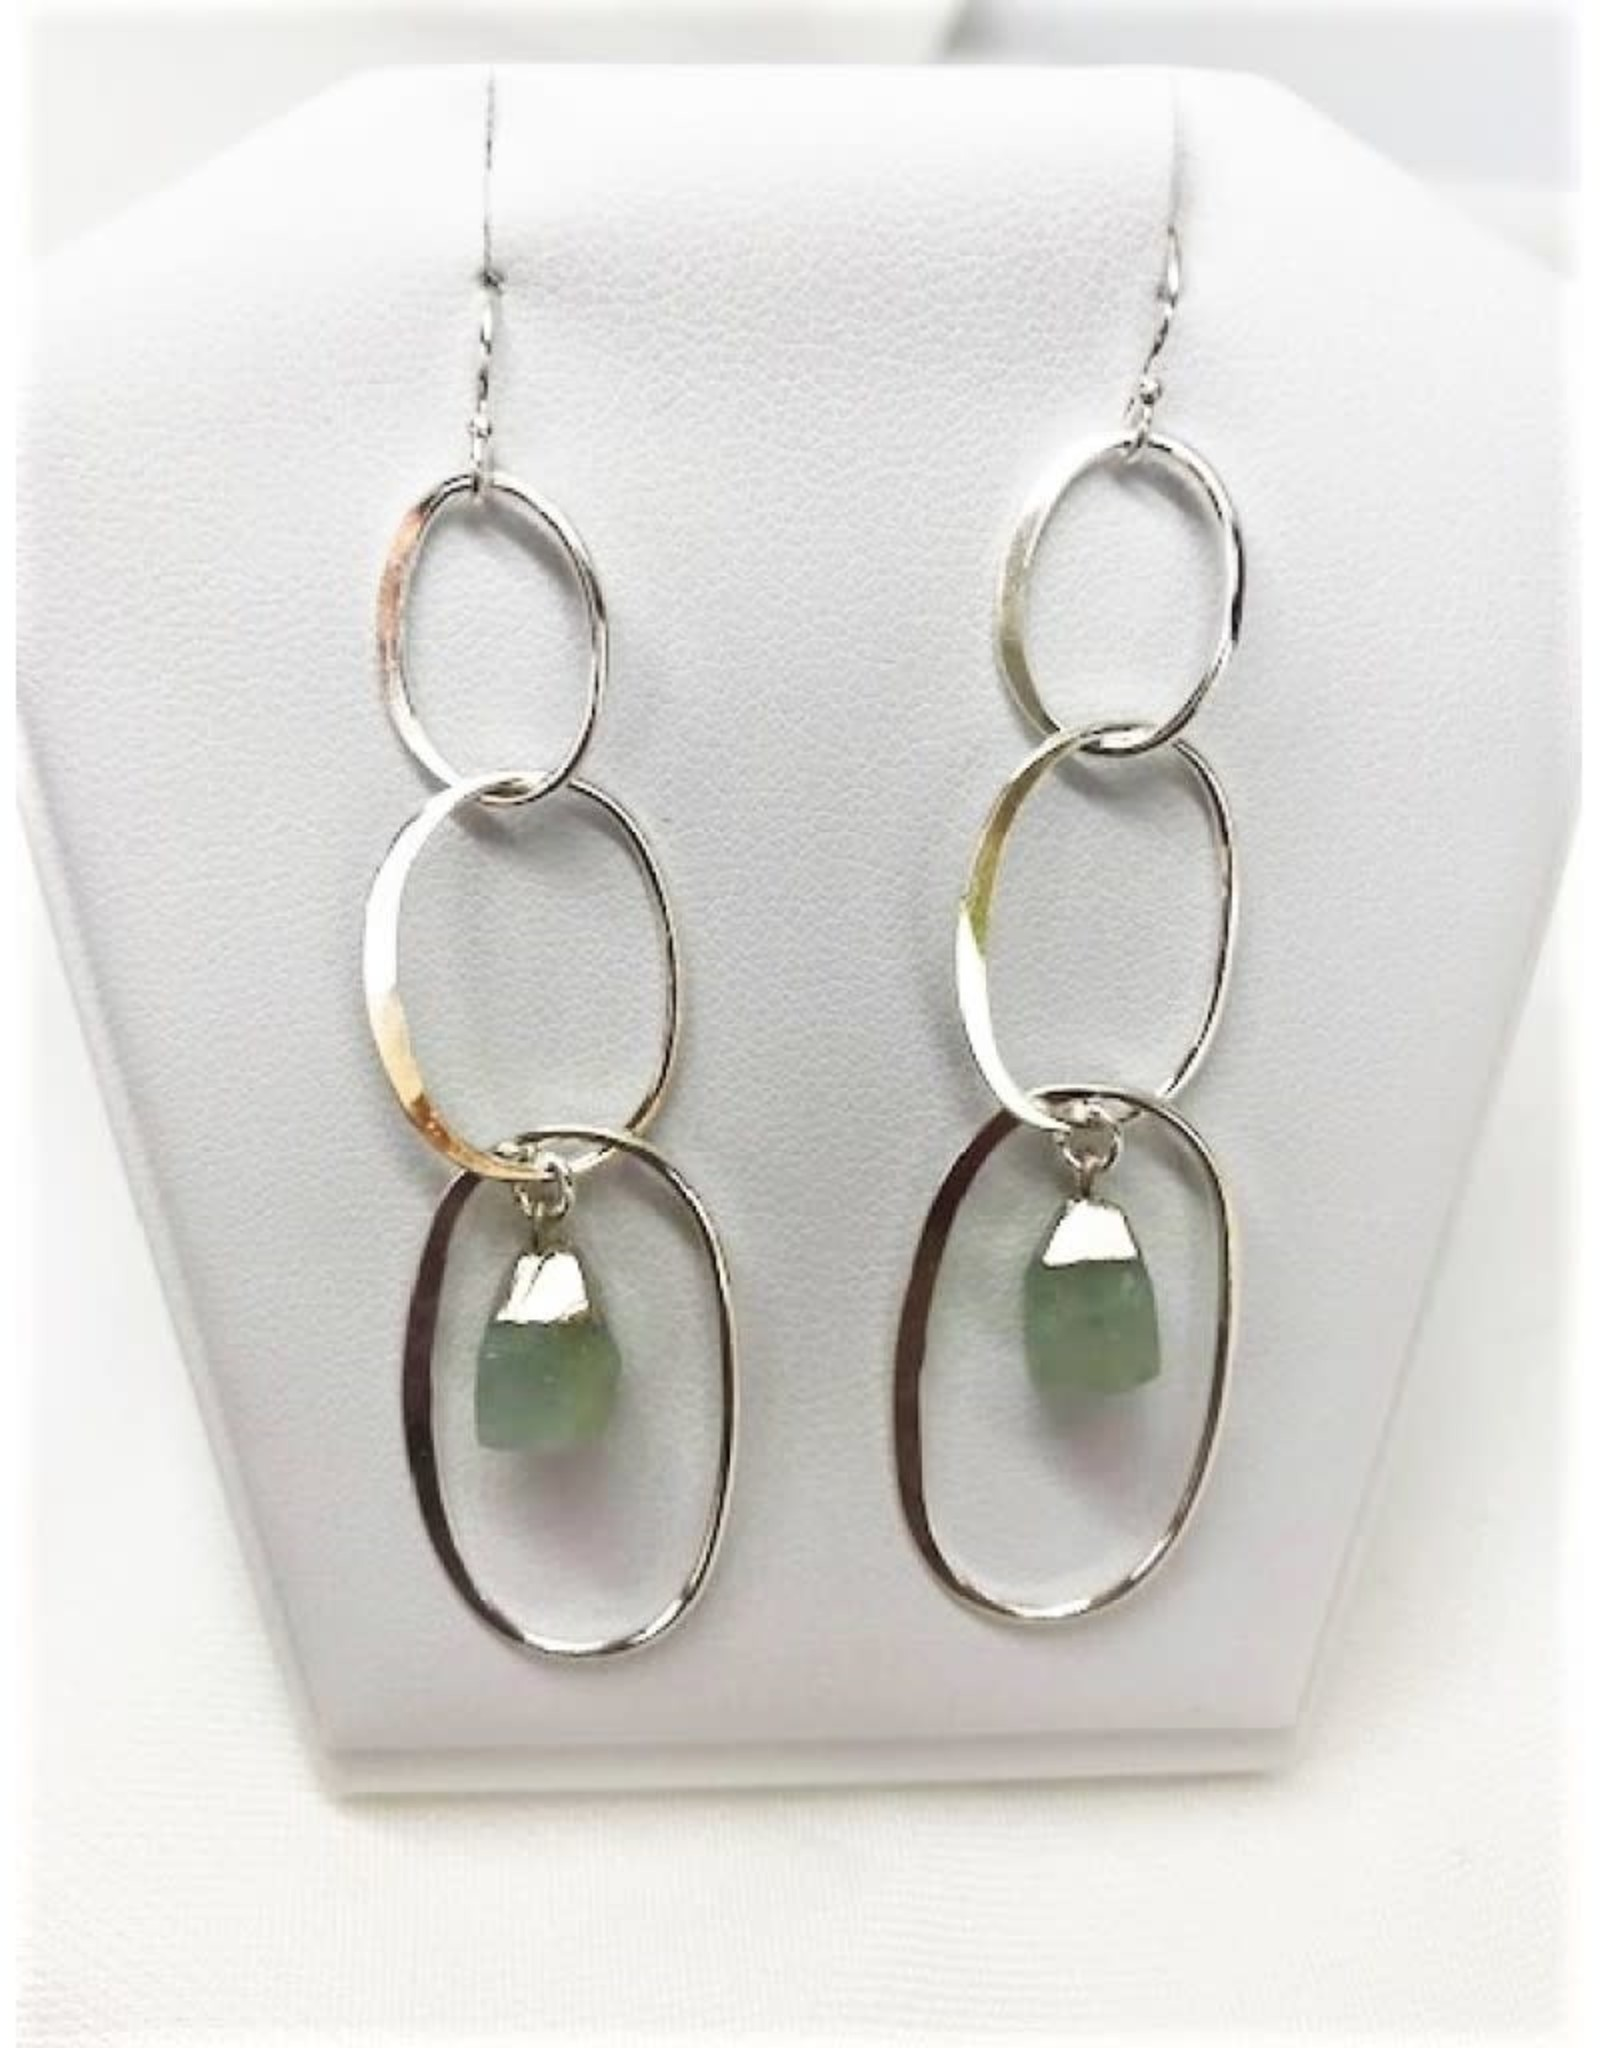 Dangle Earrings - Aquamarine/Silver/Hoops